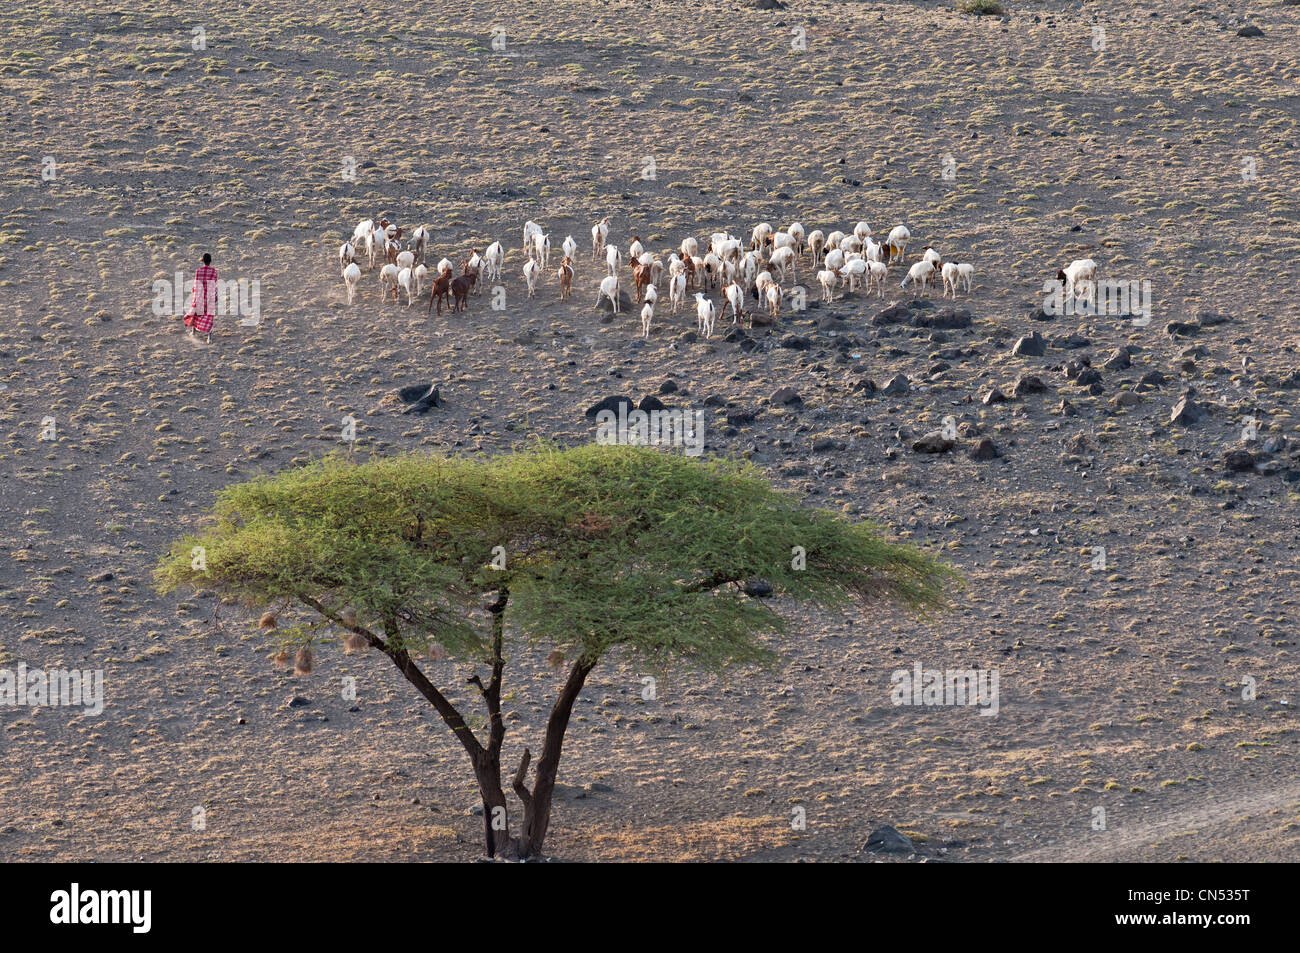 Tanzania, Arusha Region, Rift Valley, surroundings of lake Natron, Maasai shepherd Stock Photo